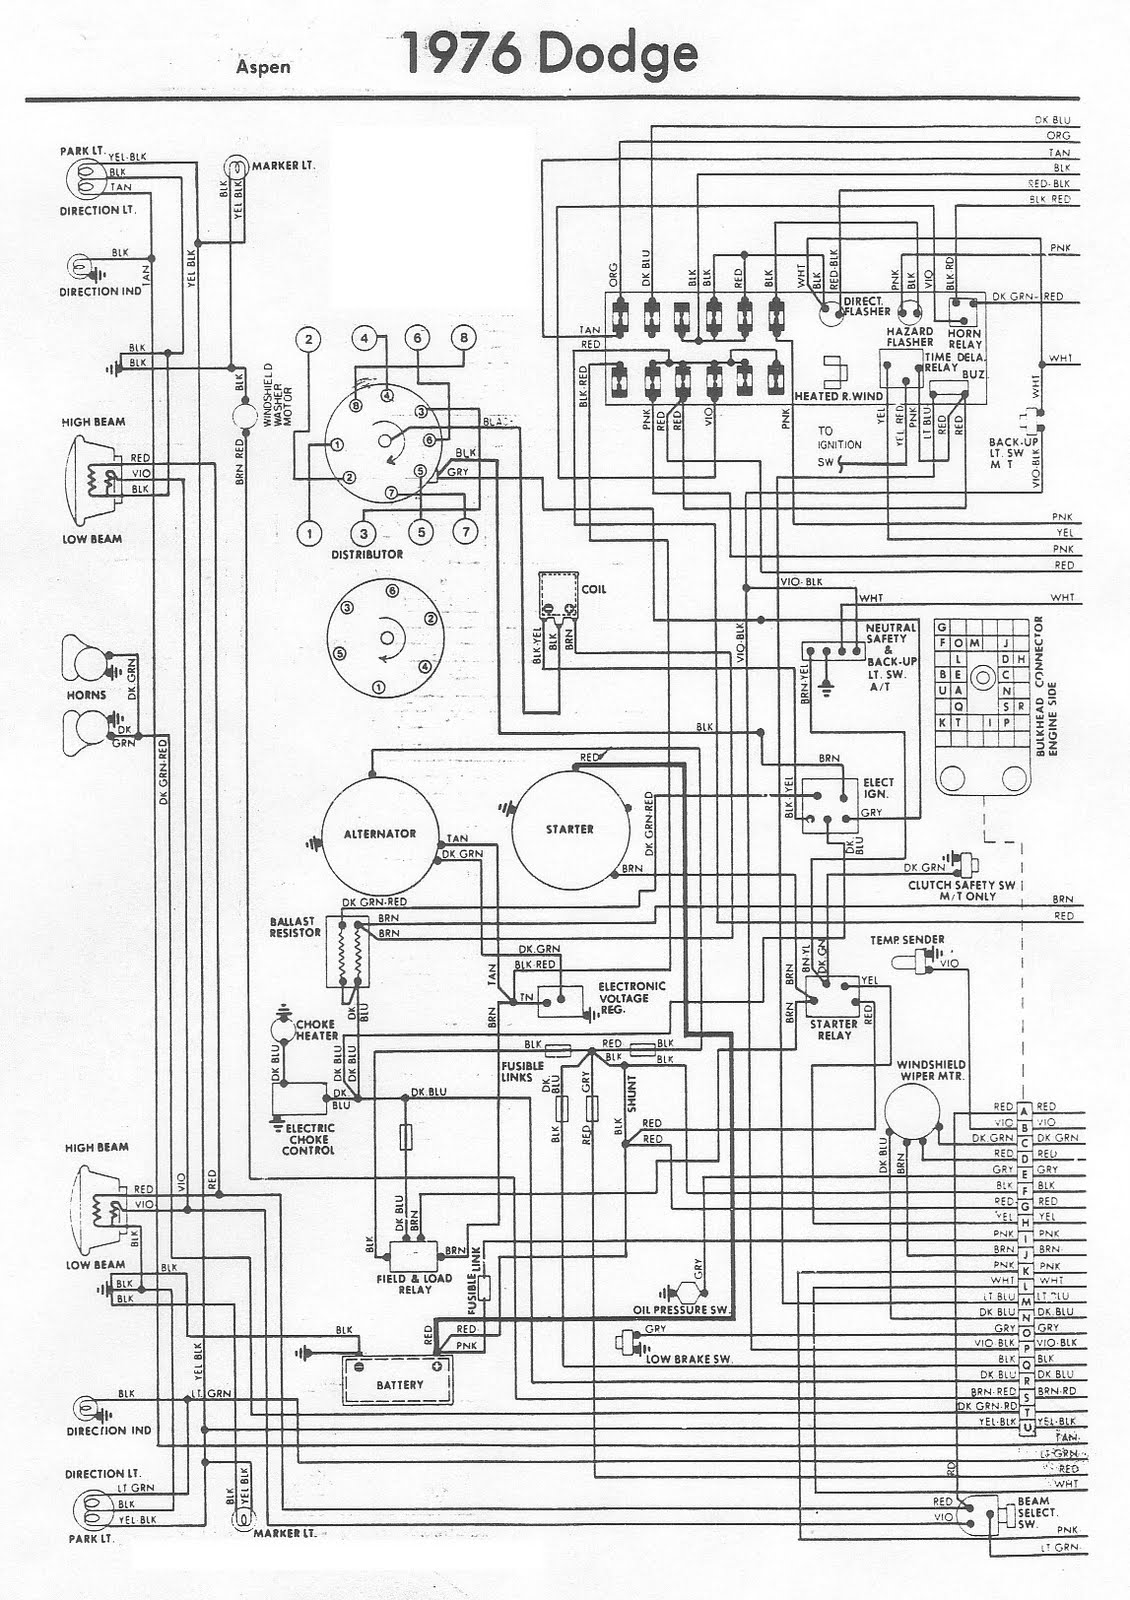 76_Dodge_Aspen_Engine_wiring free auto wiring diagram 1976 dodge aspen engine compartment chrysler aspen wiring diagram at bayanpartner.co